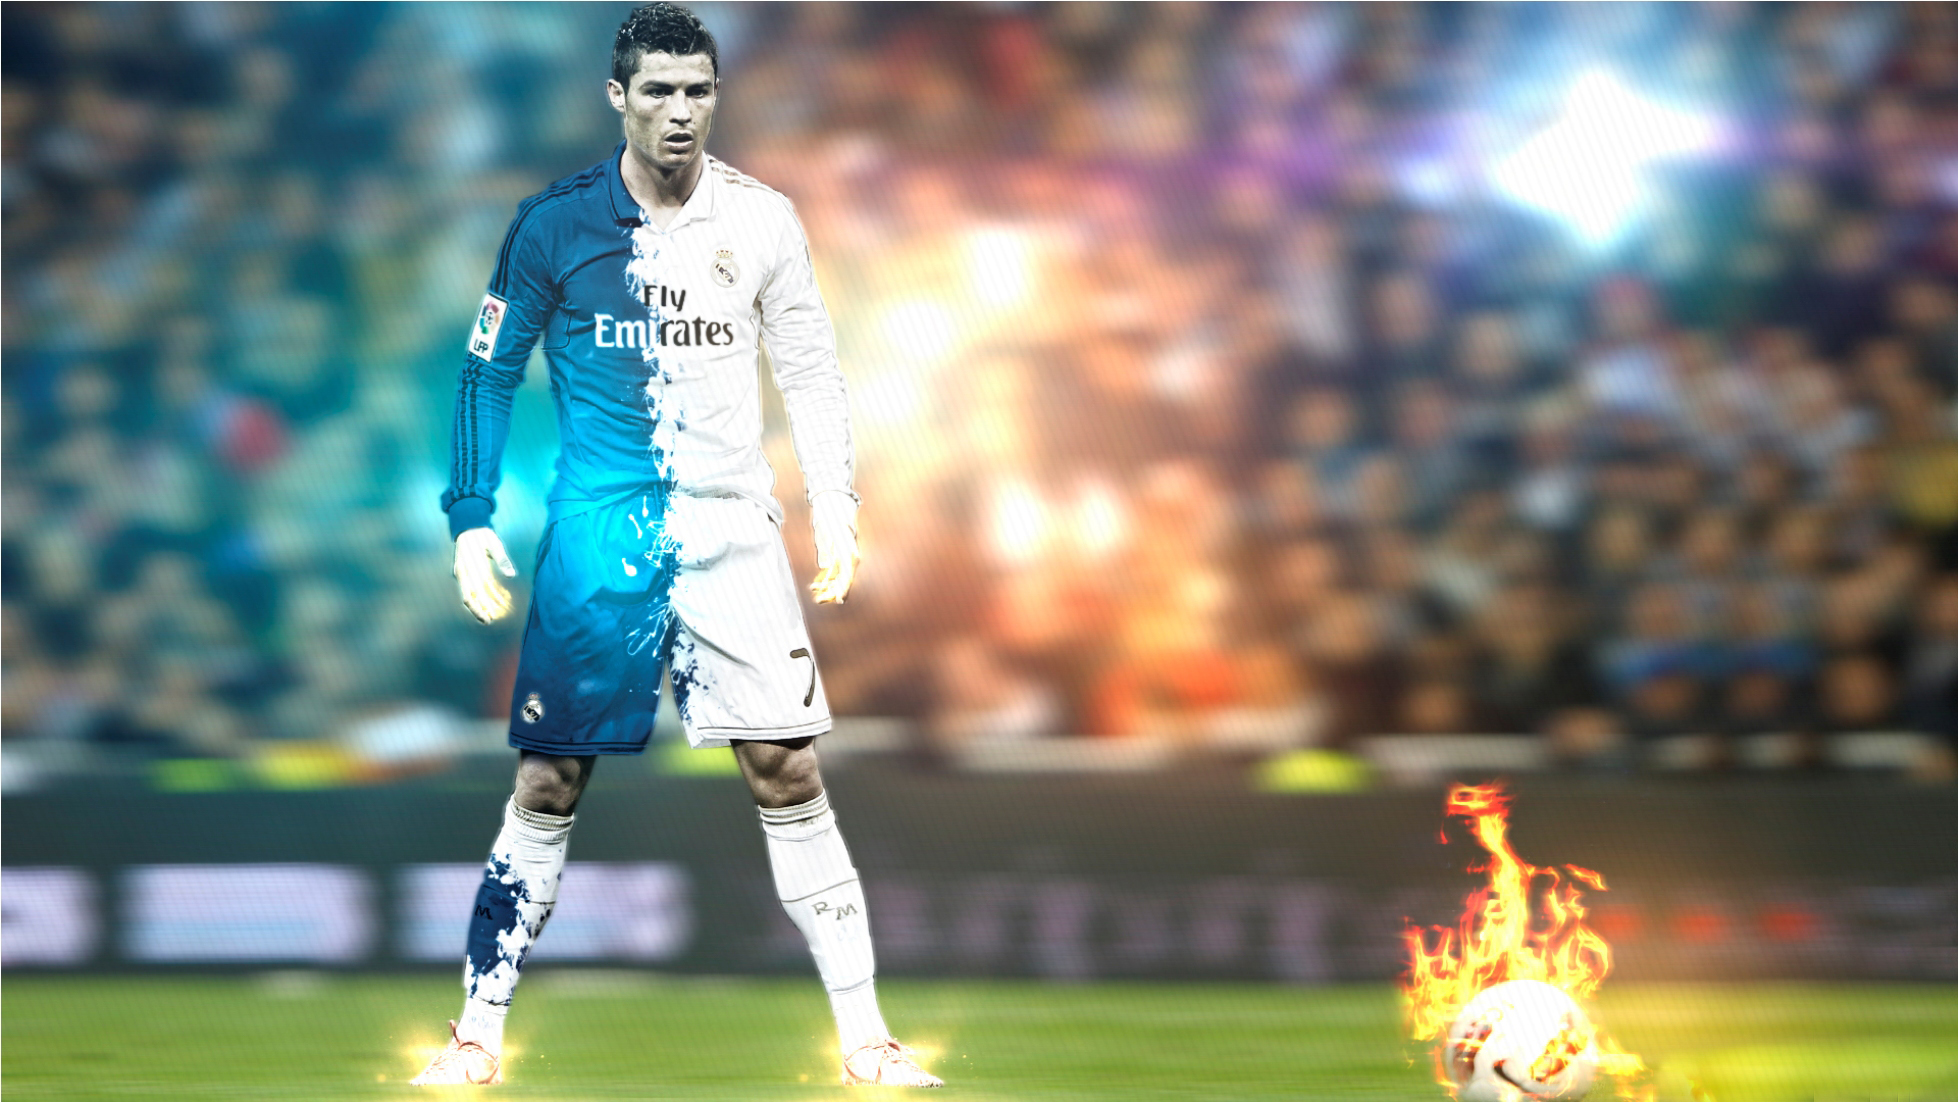 Art Of Cristiano Ronaldo Fans Wallpaper Sport Soccer: Cristiano Ronaldo HD Wallpapers • PoPoPics.com